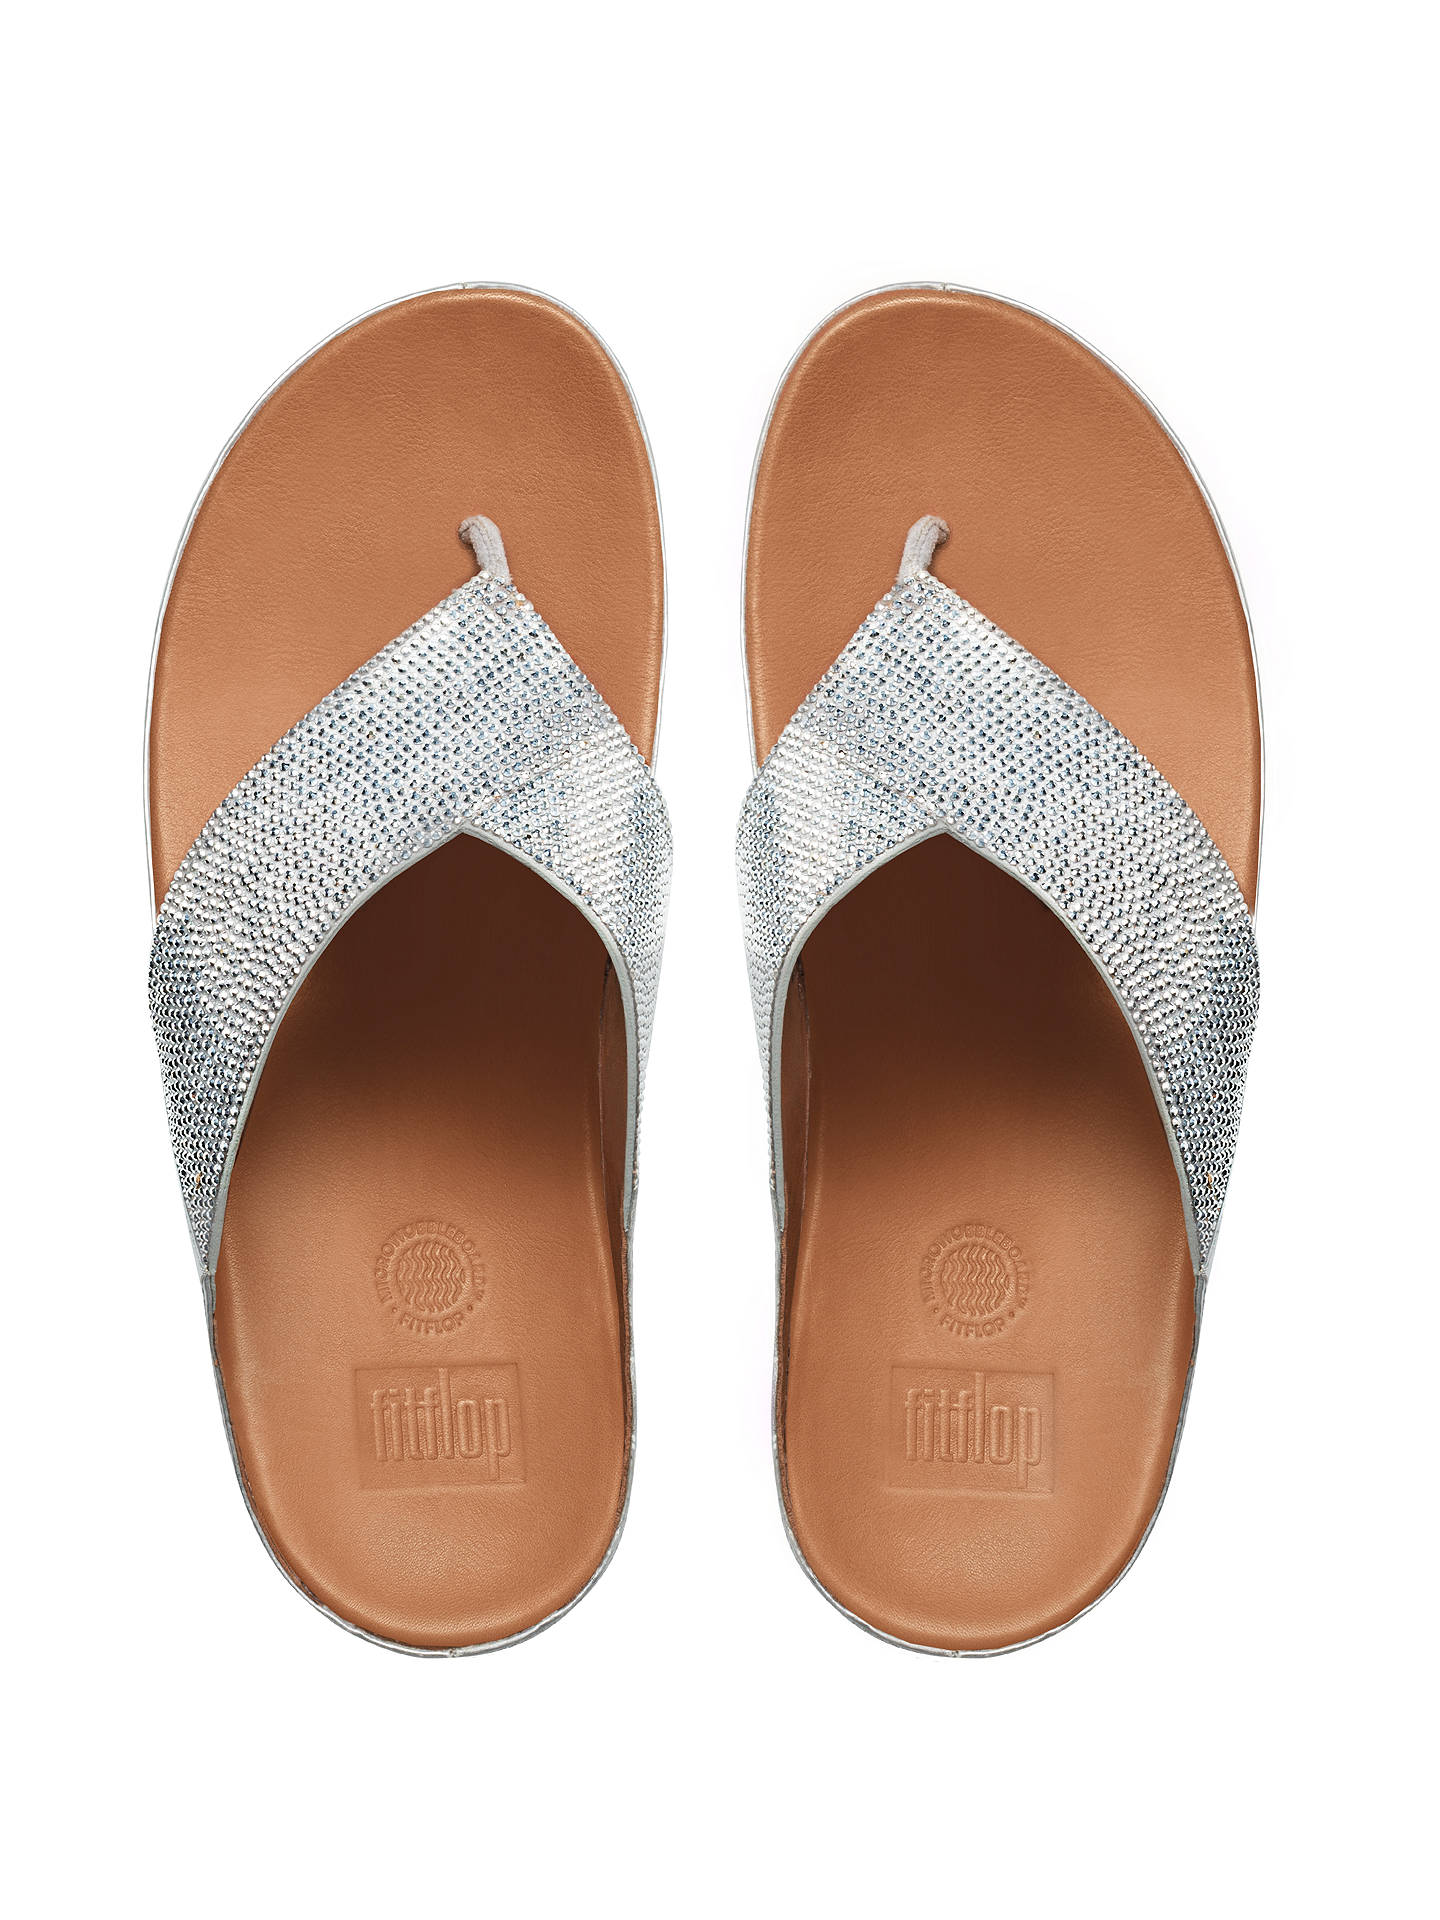 BuyFitFlop Crystall Toe Post Sandals, Silver, 4 Online at johnlewis.com